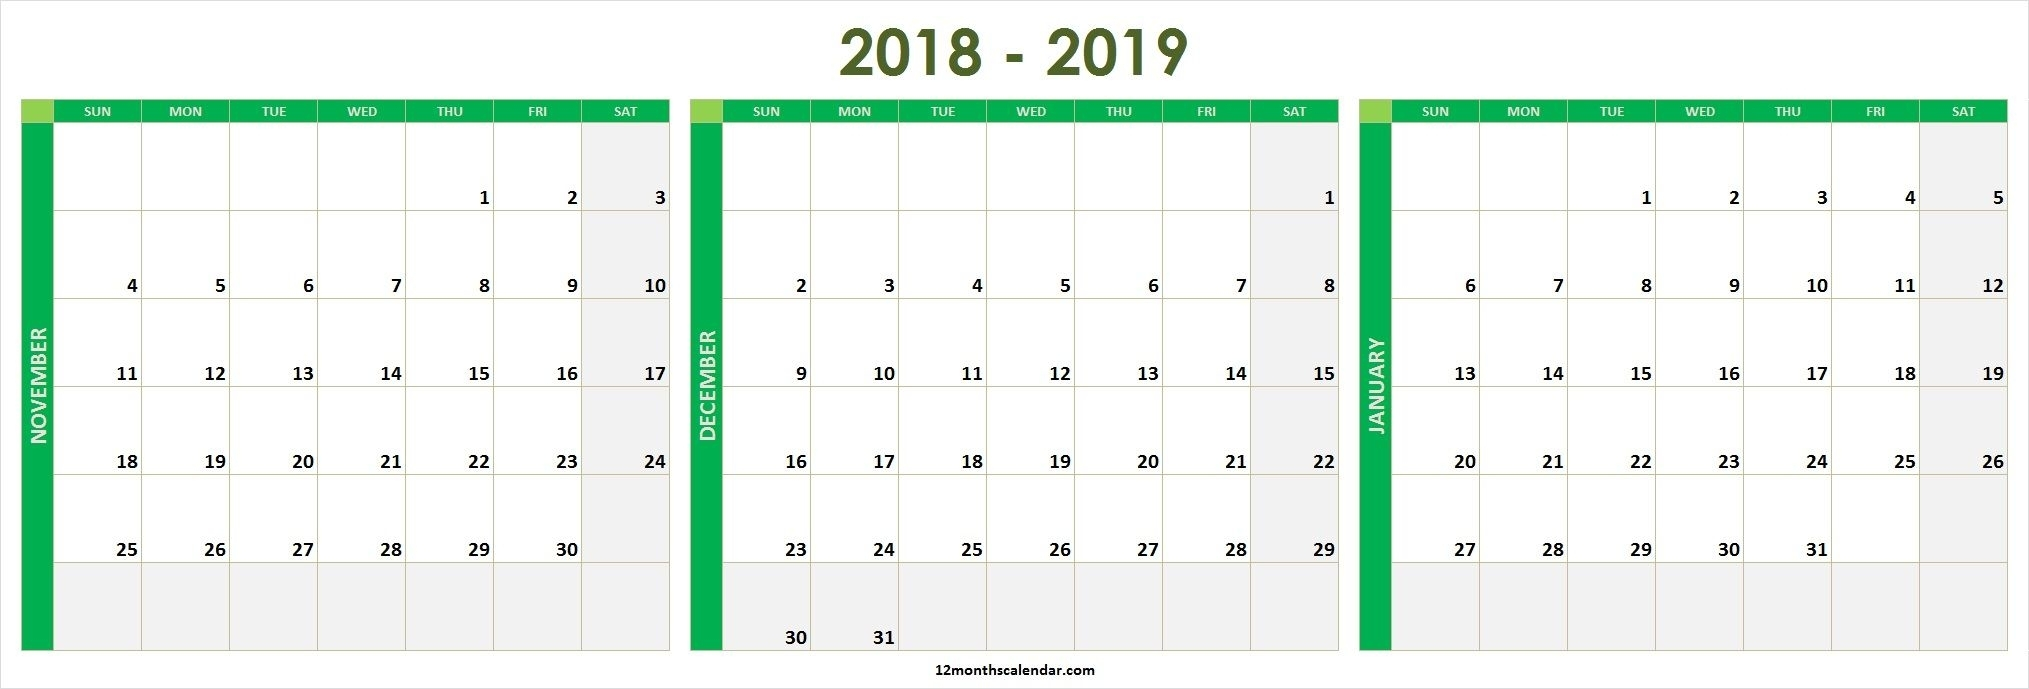 2021 December January 2020 Calendar With Notes